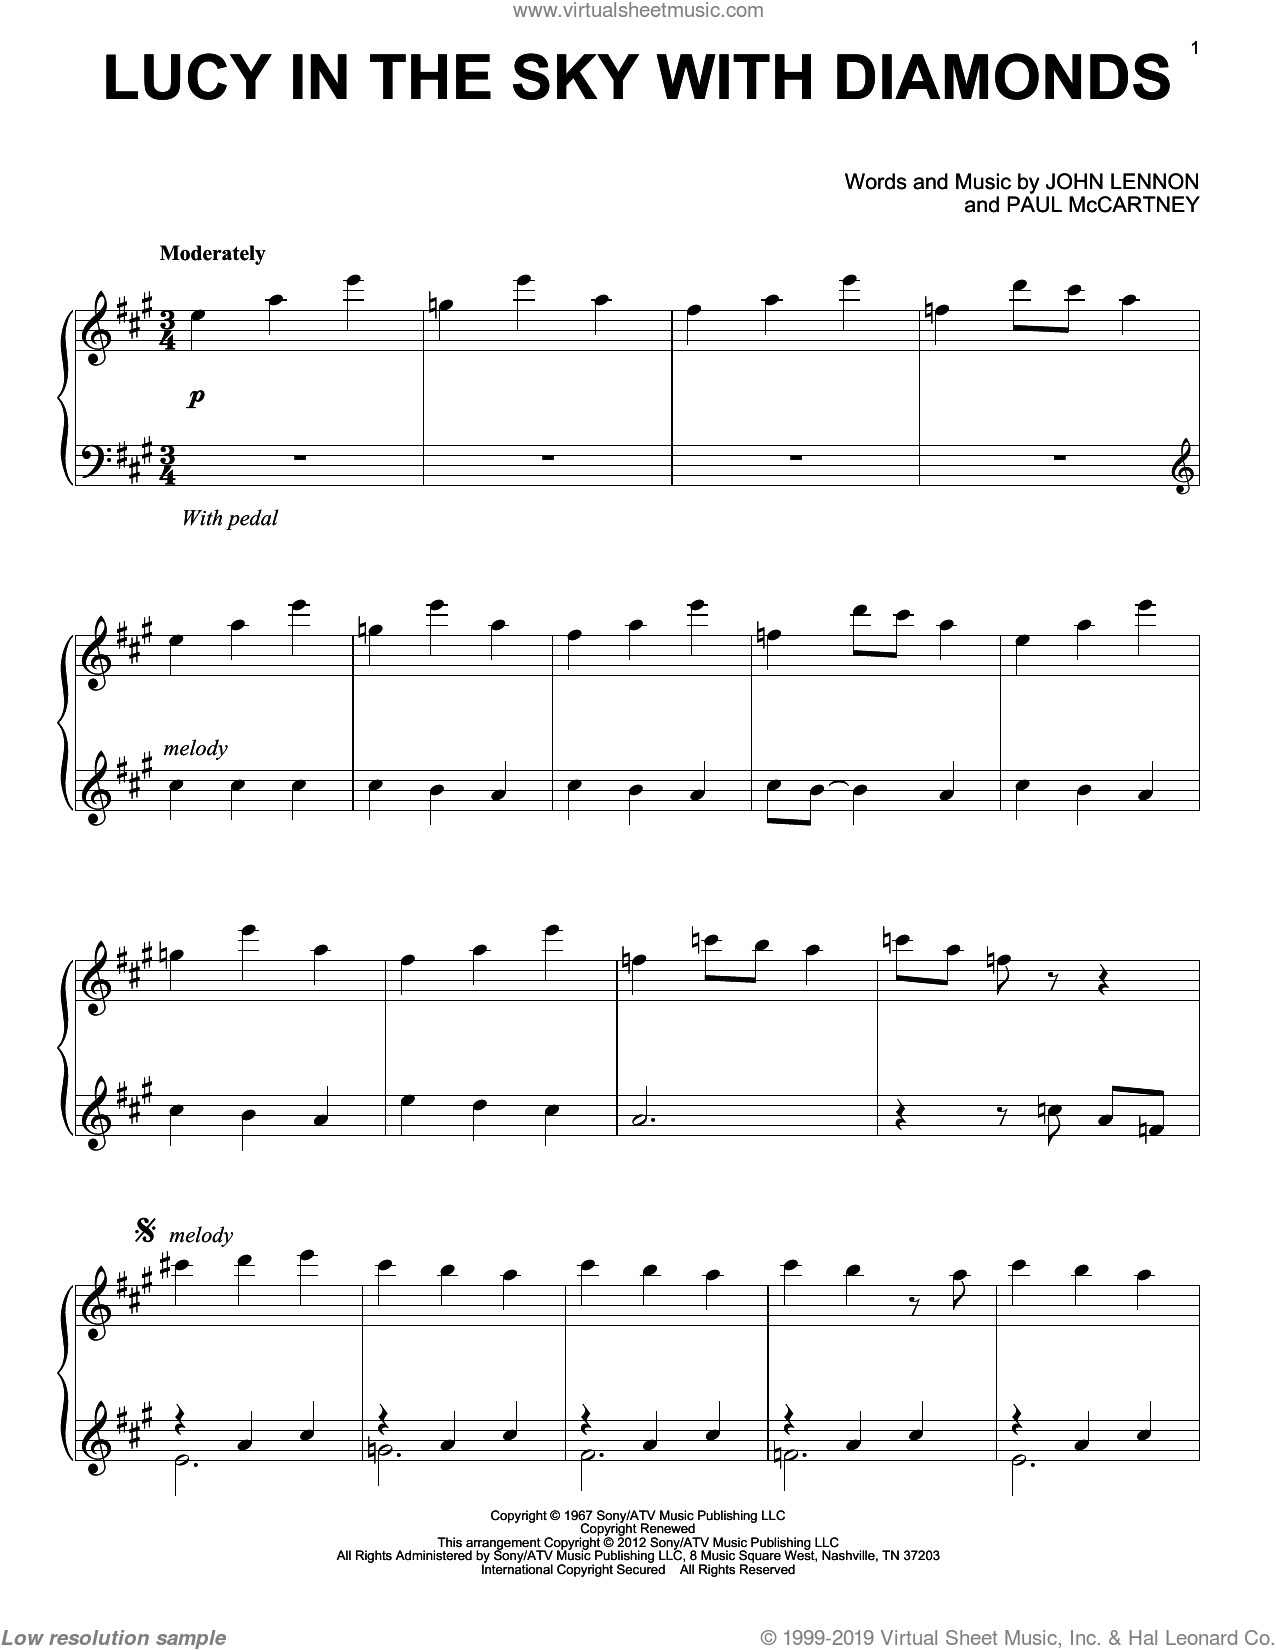 Lucy In The Sky With Diamonds sheet music for piano solo by The Beatles, John Lennon and Paul McCartney. Score Image Preview.